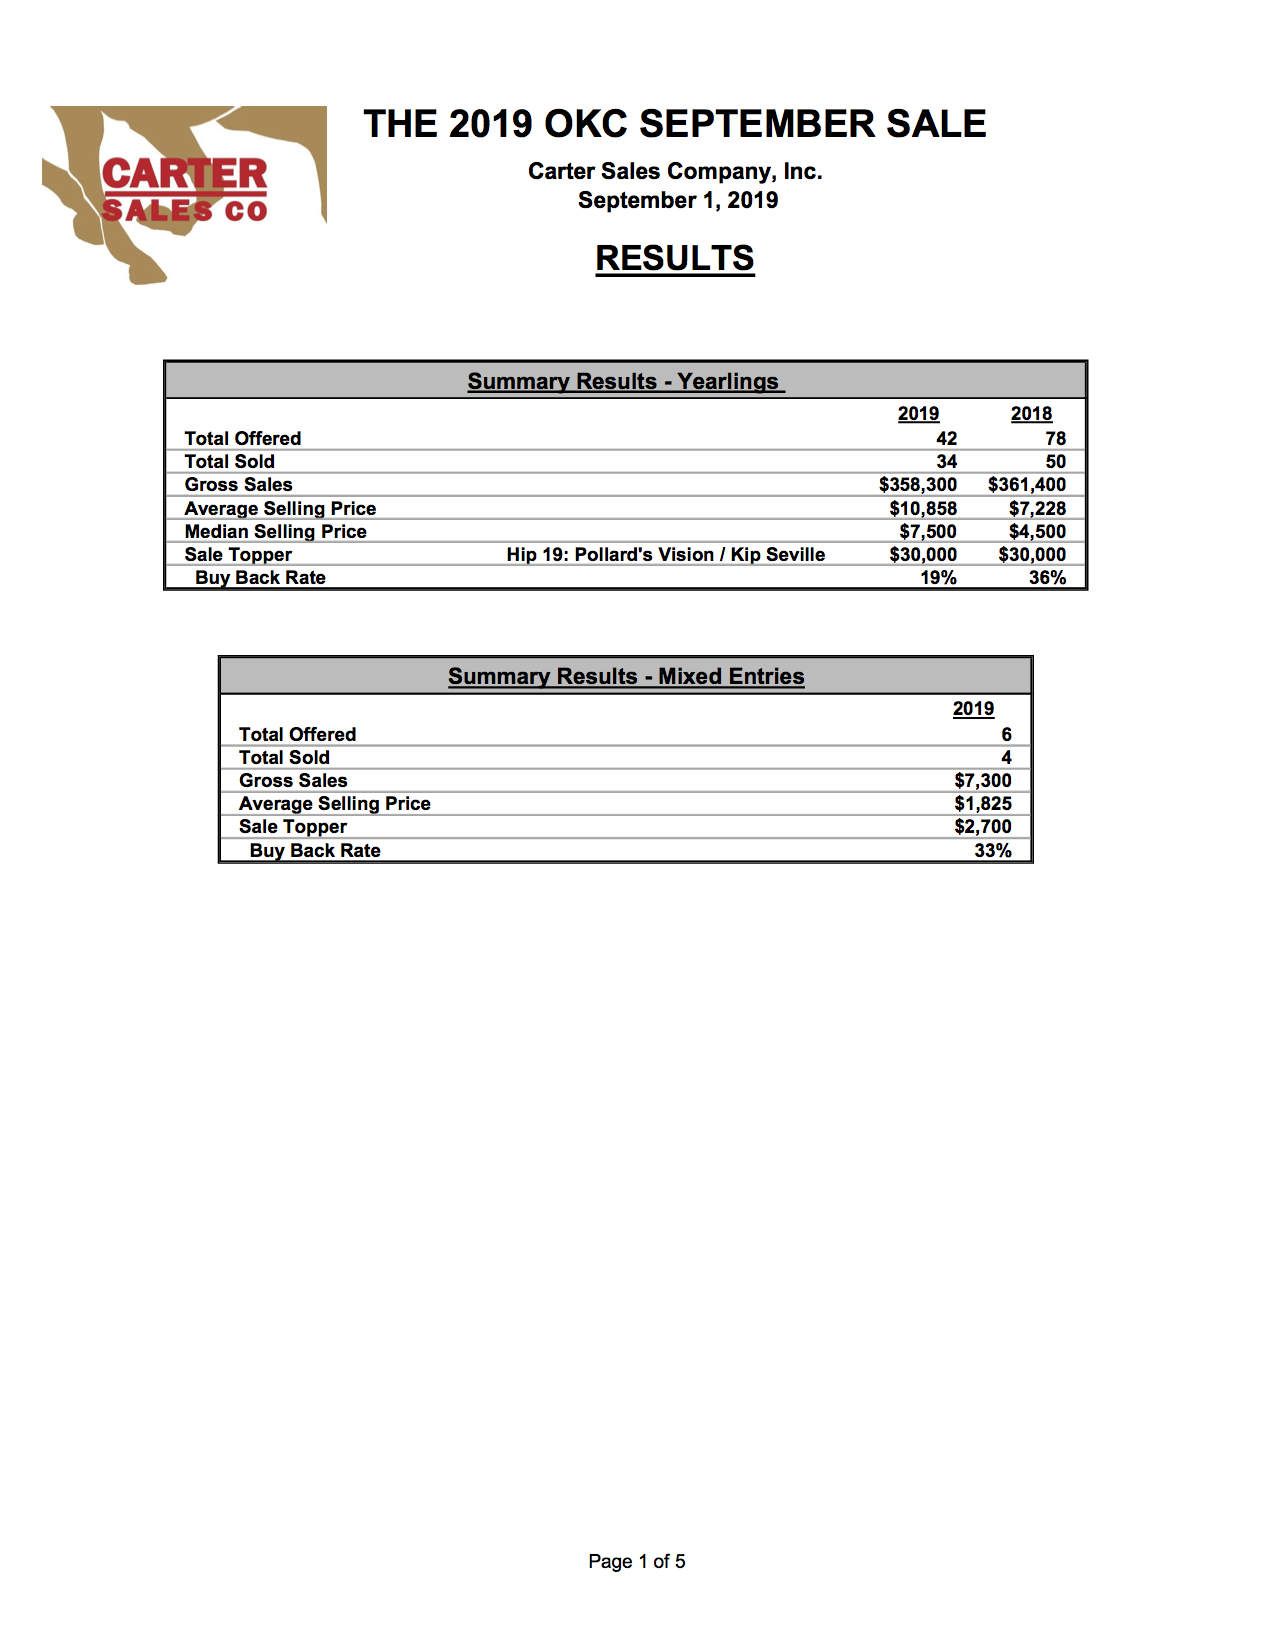 FINAL RESULTS PG.1.png